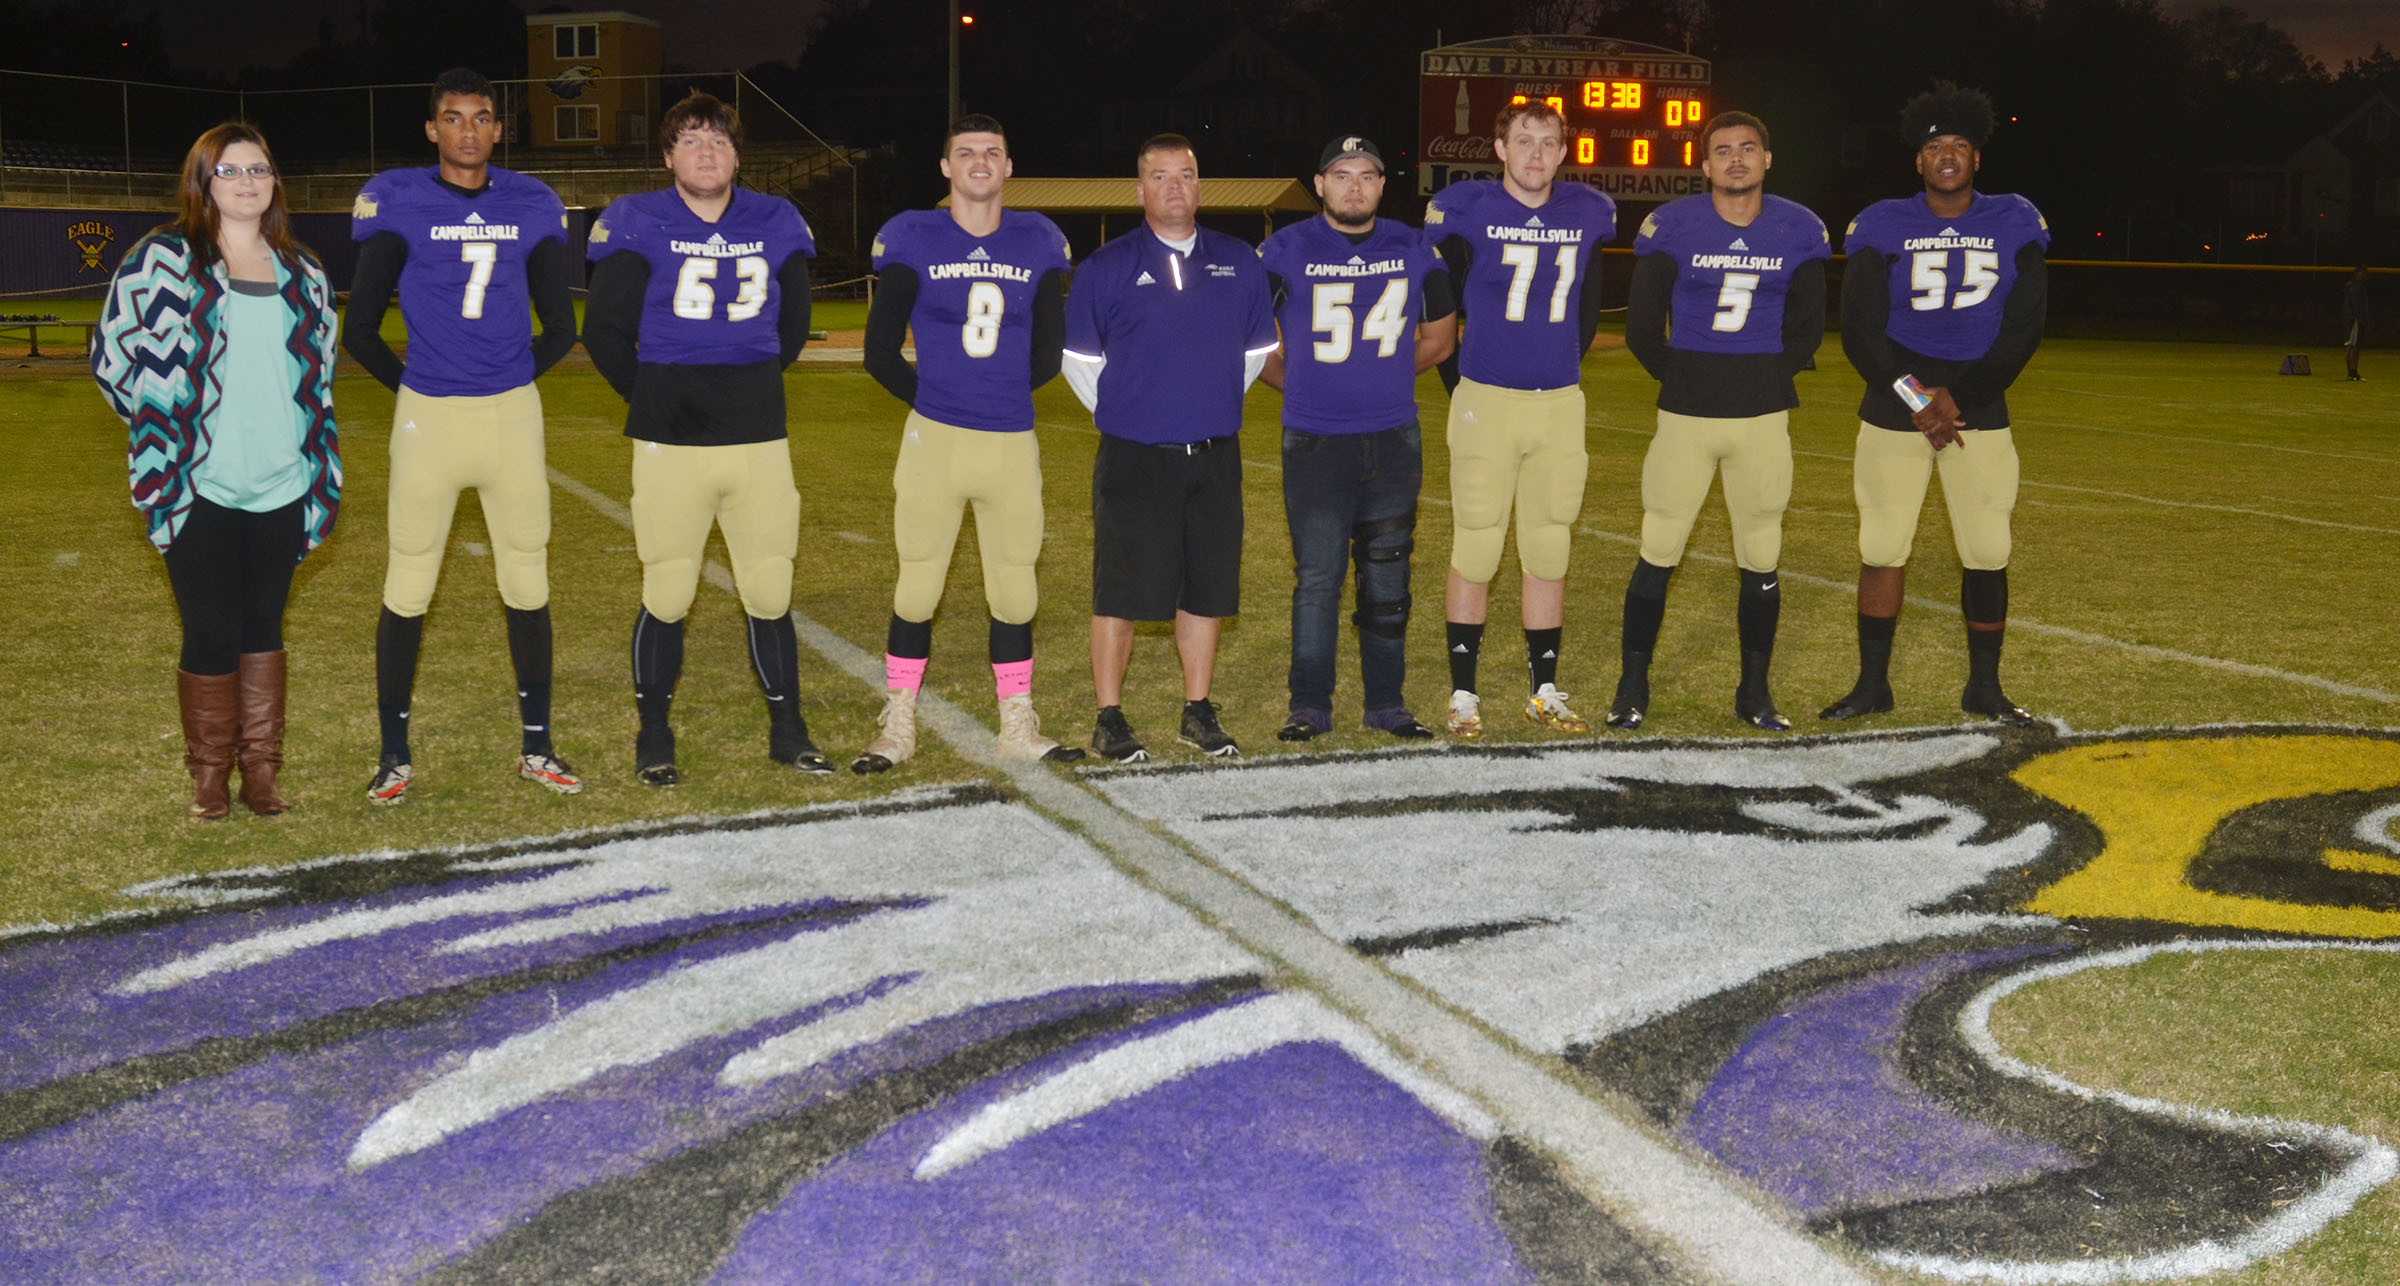 This year's CHS football seniors are, from left, manager Vera Brown, Daniel Silva, Donnie Osinger, Stone Williams, head coach Dale Estes, Logan Brown, Jared Brewster, Arick Groves and Micah Corley.